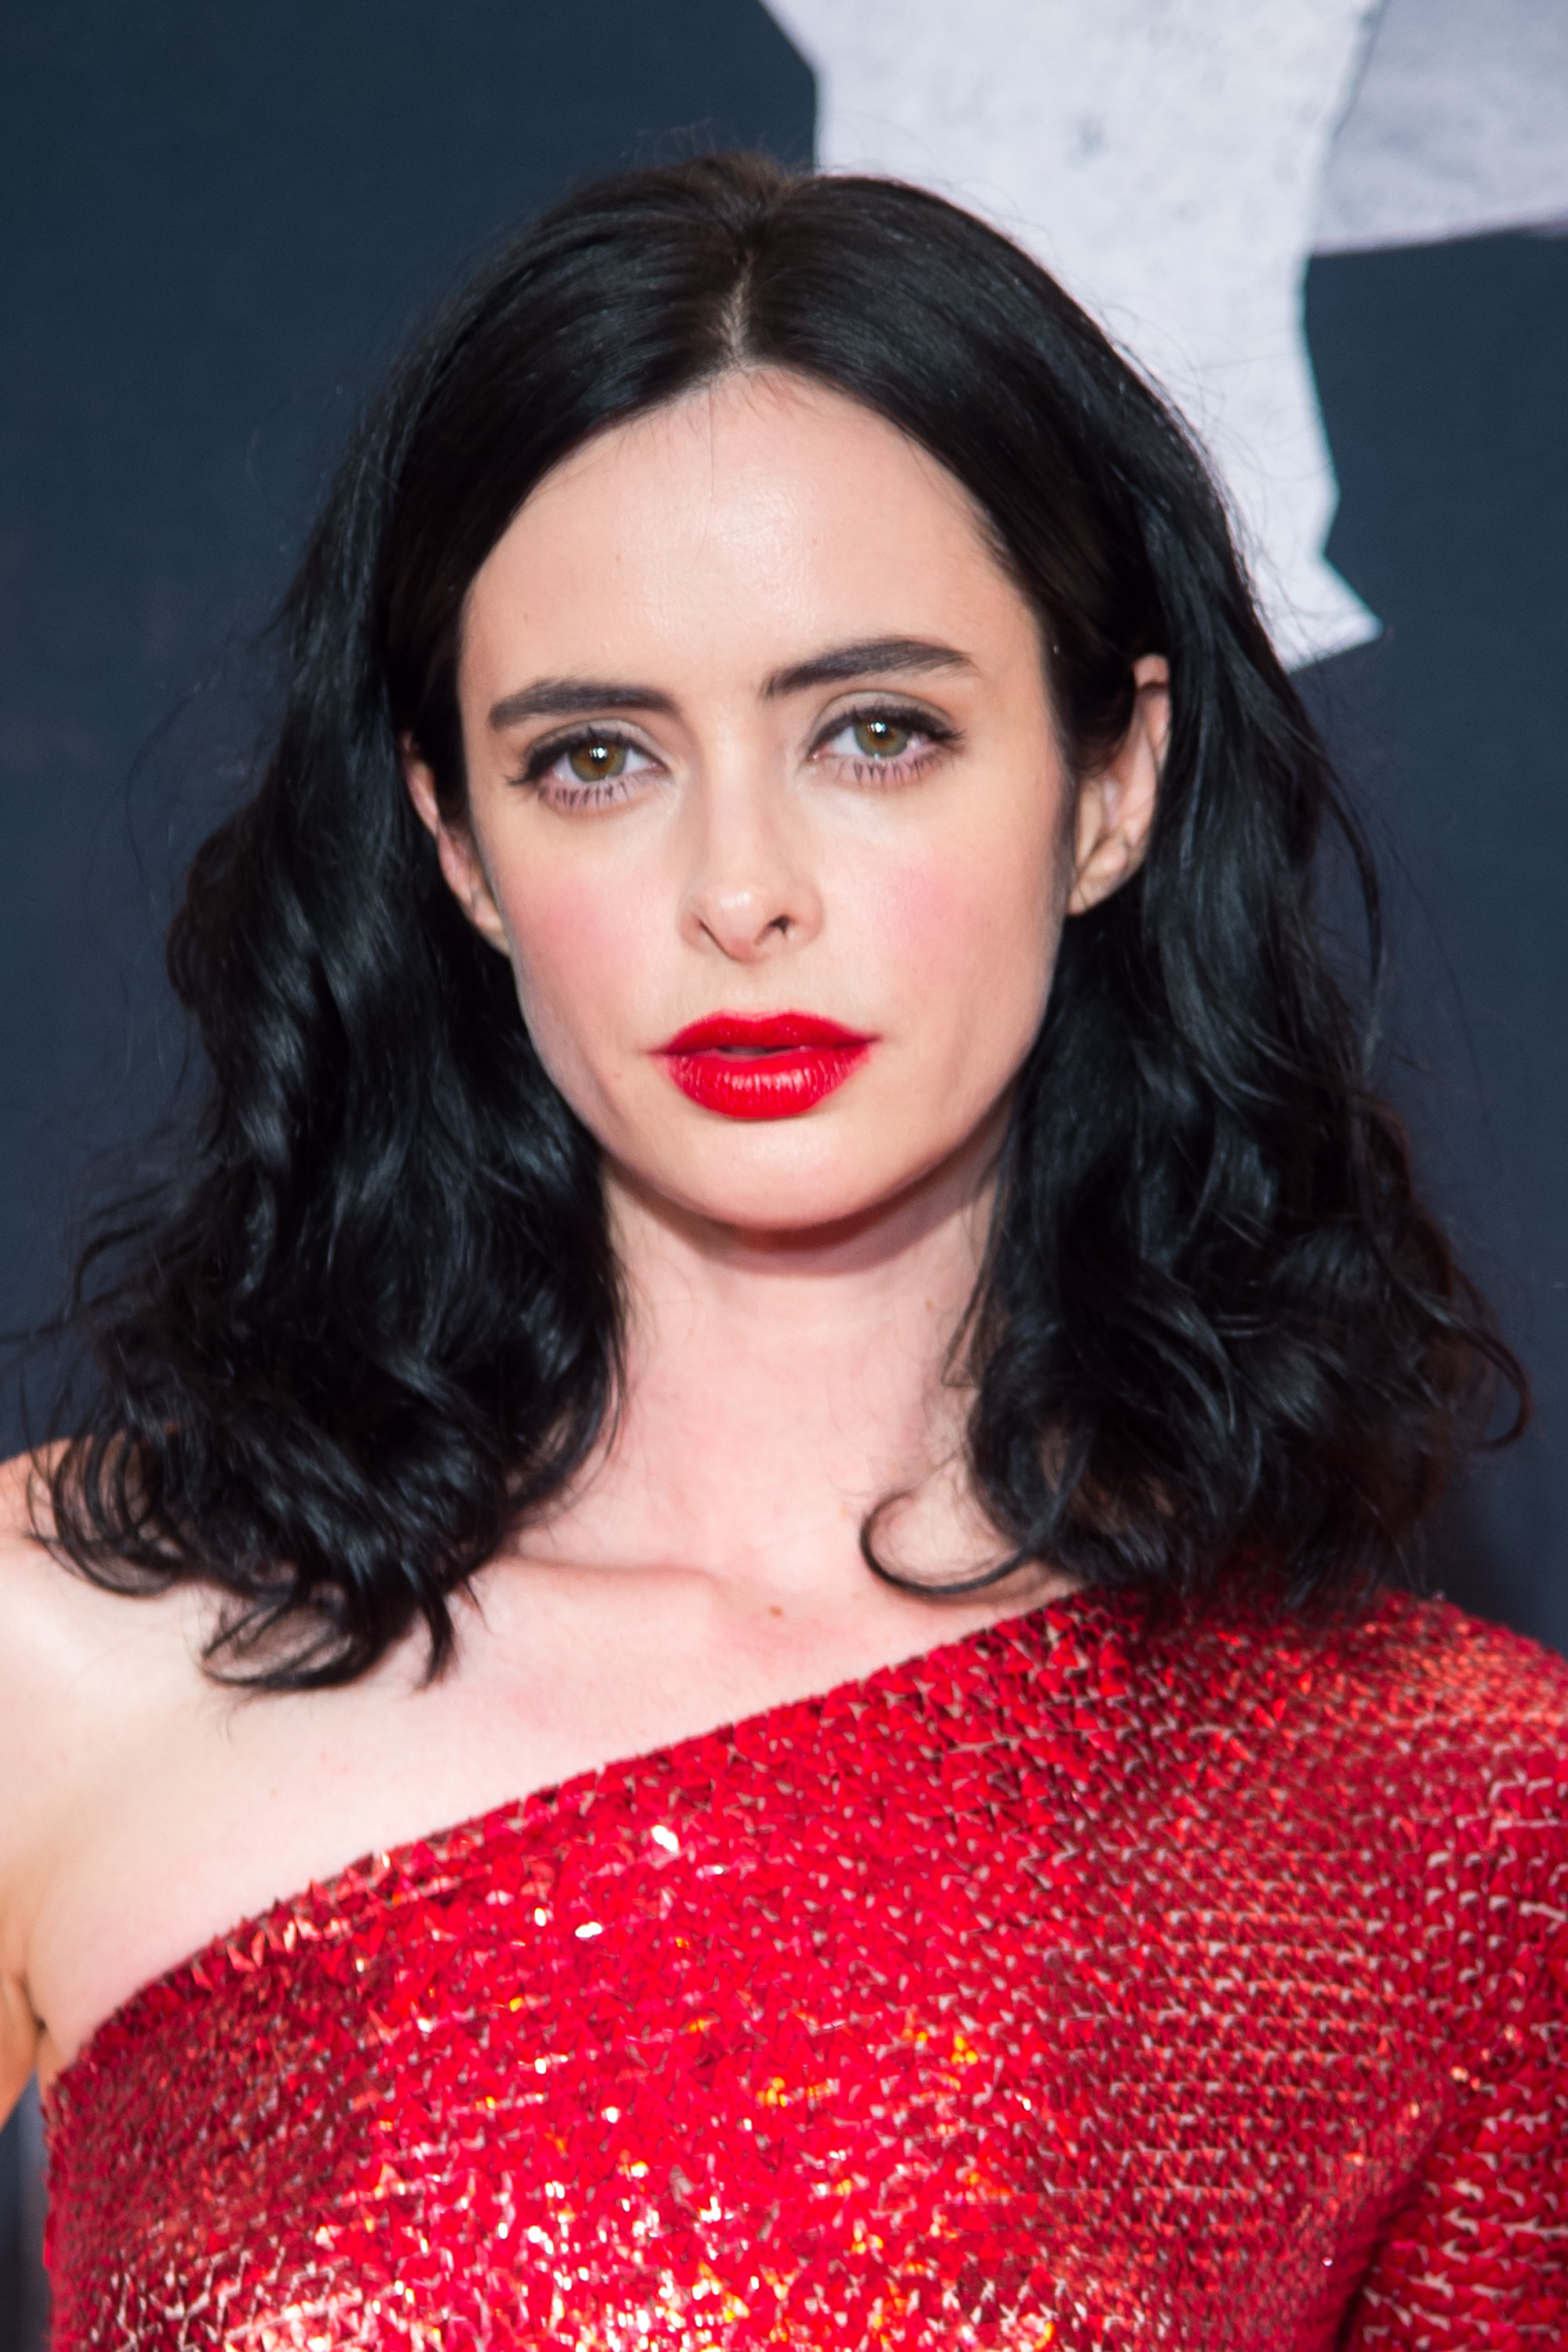 Krysten Ritter - Contact Info, Agent, Manager | IMDbPro